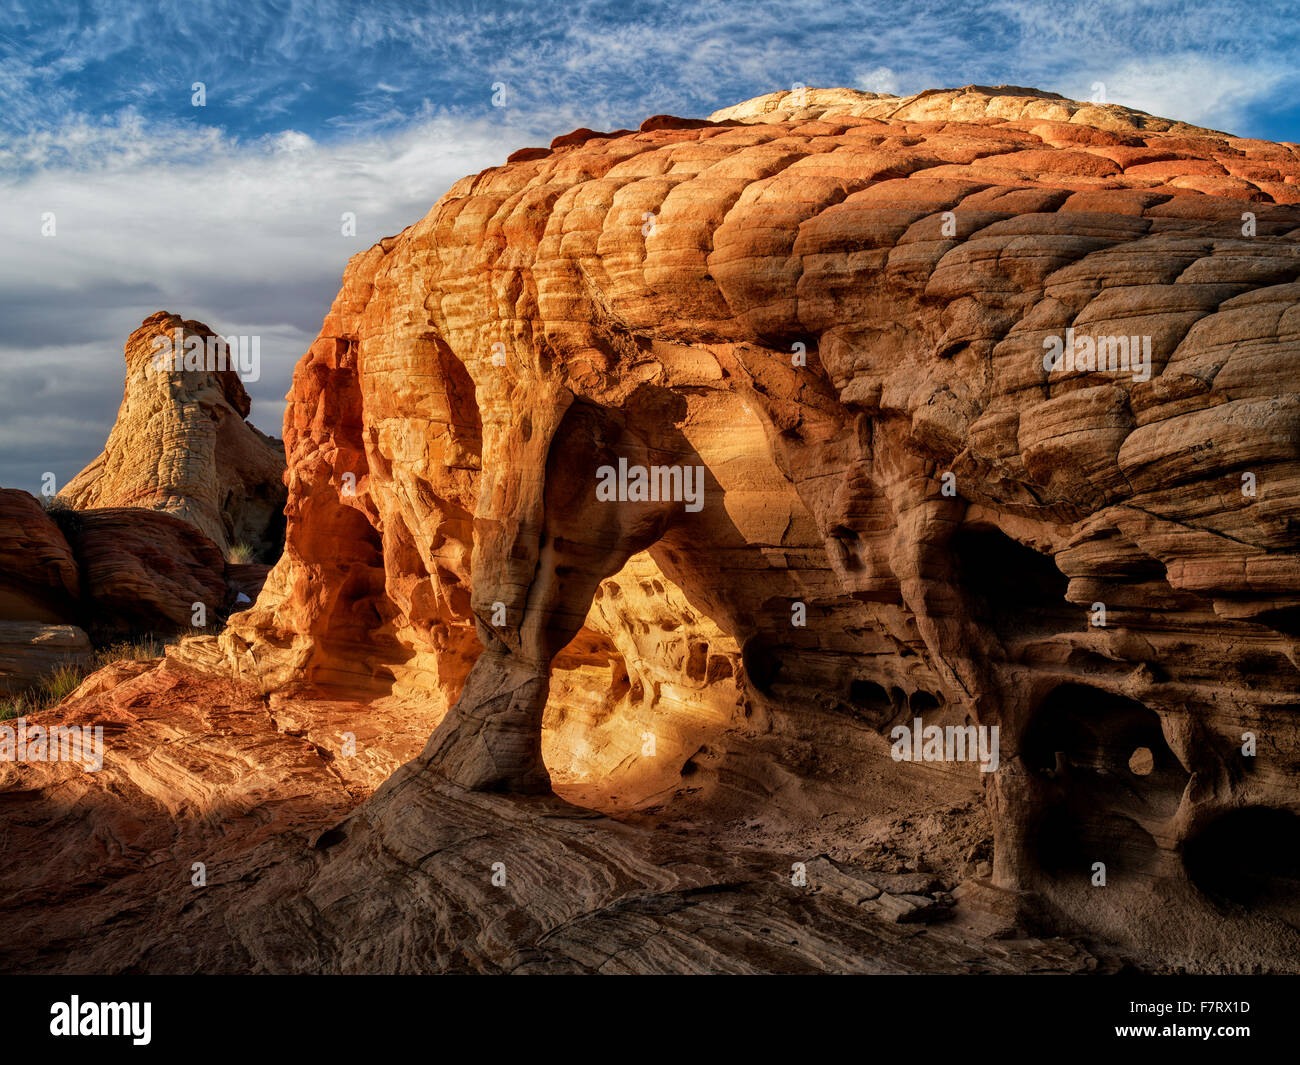 Rock formation. Valley of Fire State Park, Nevada - Stock Image